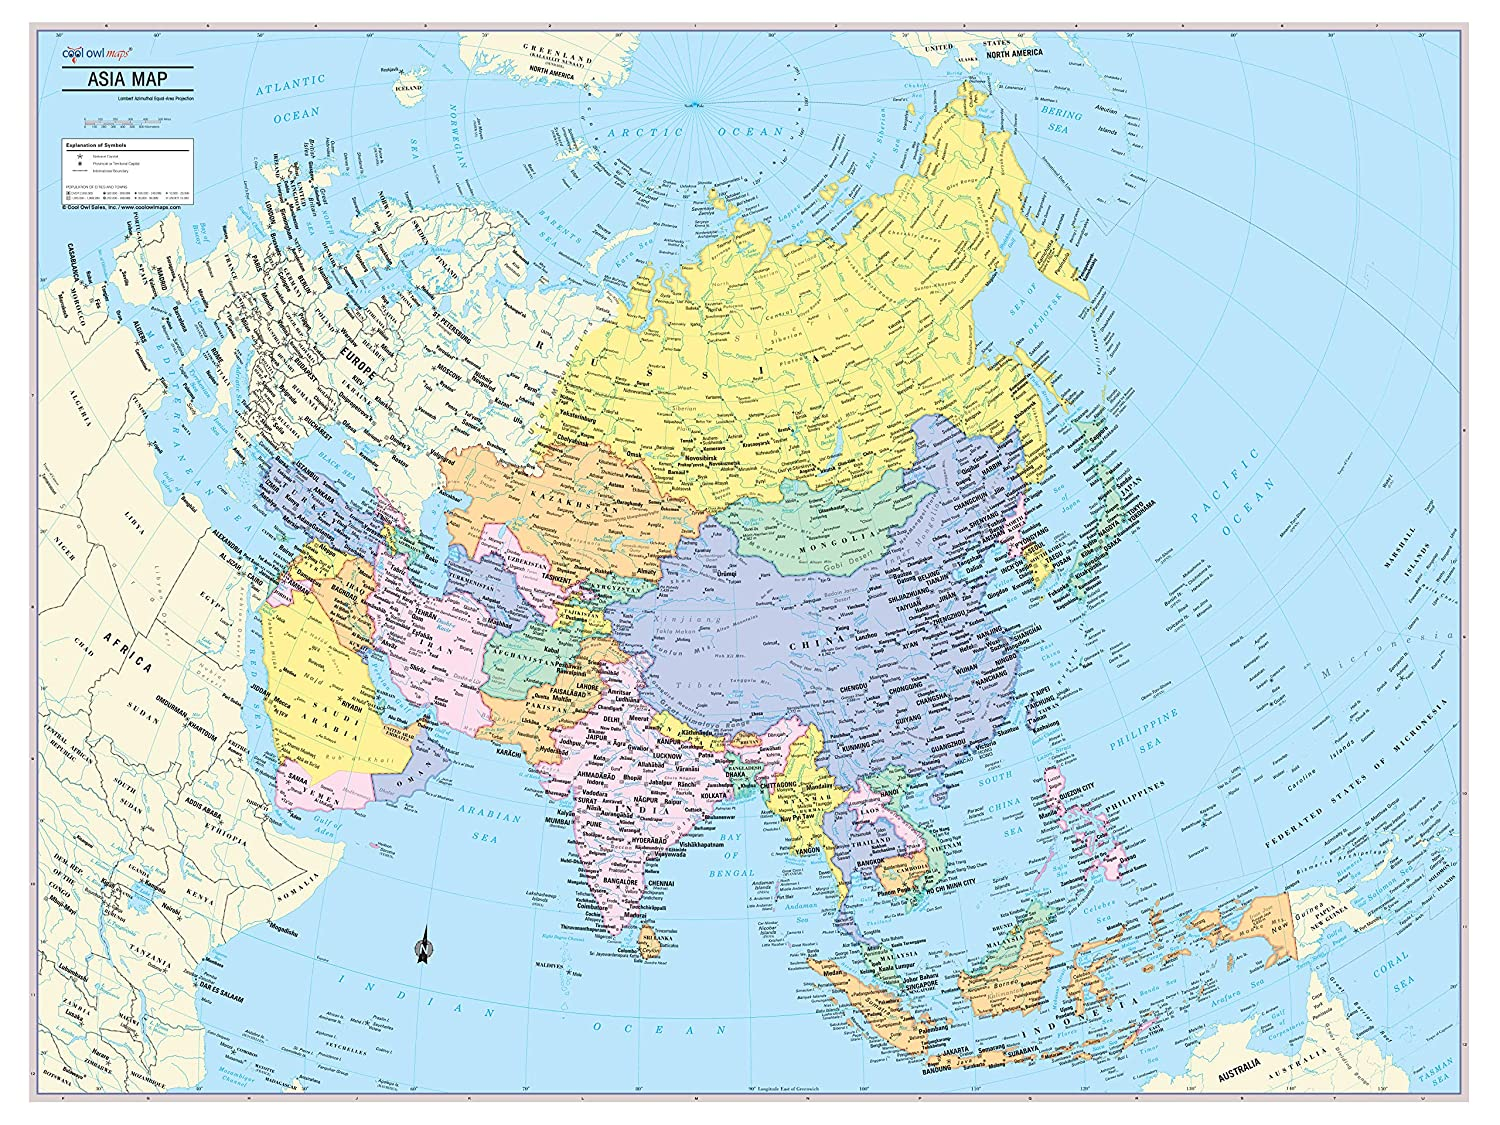 Detailed Map Of Asia.Amazon Com Cool Owl Maps Asia Continent Wall Map Poster Paper 32